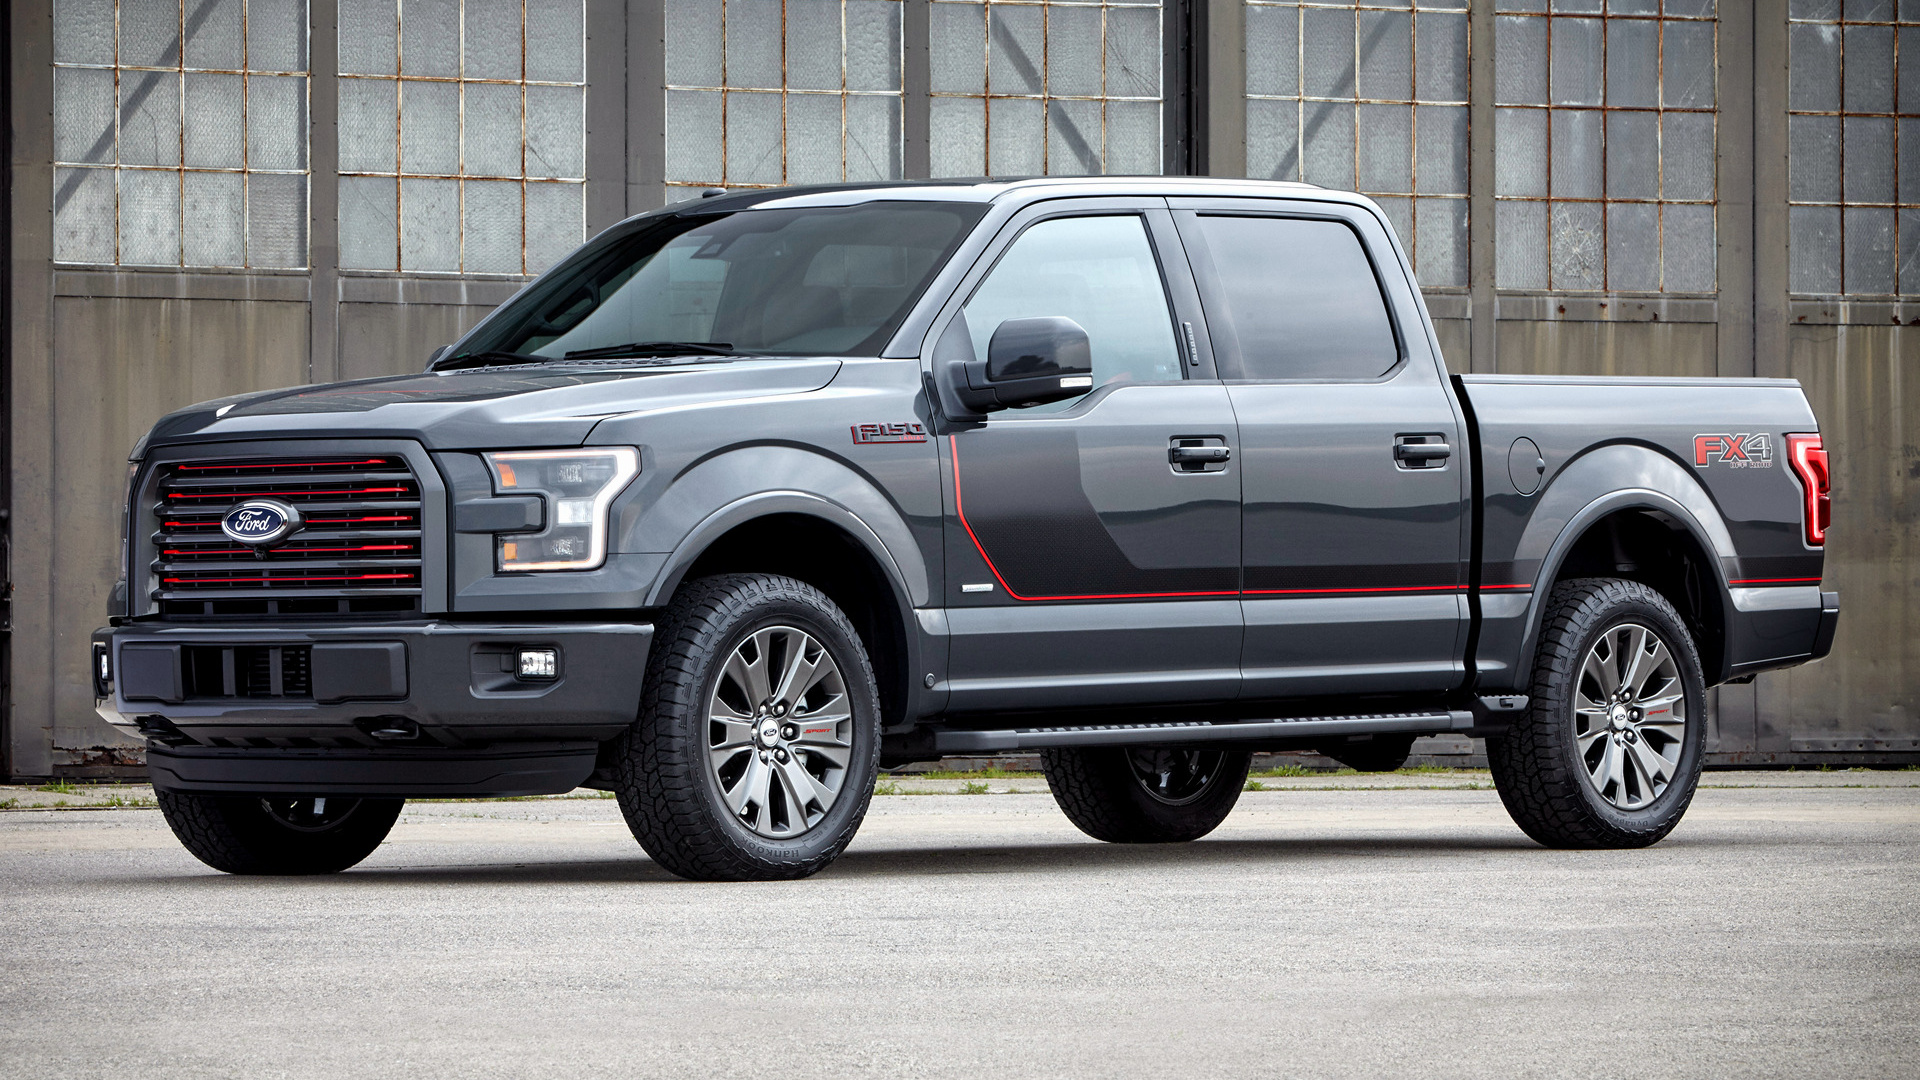 ford f 150 lariat fx4 supercrew appearance package 2016 wallpapers and hd images car pixel. Black Bedroom Furniture Sets. Home Design Ideas